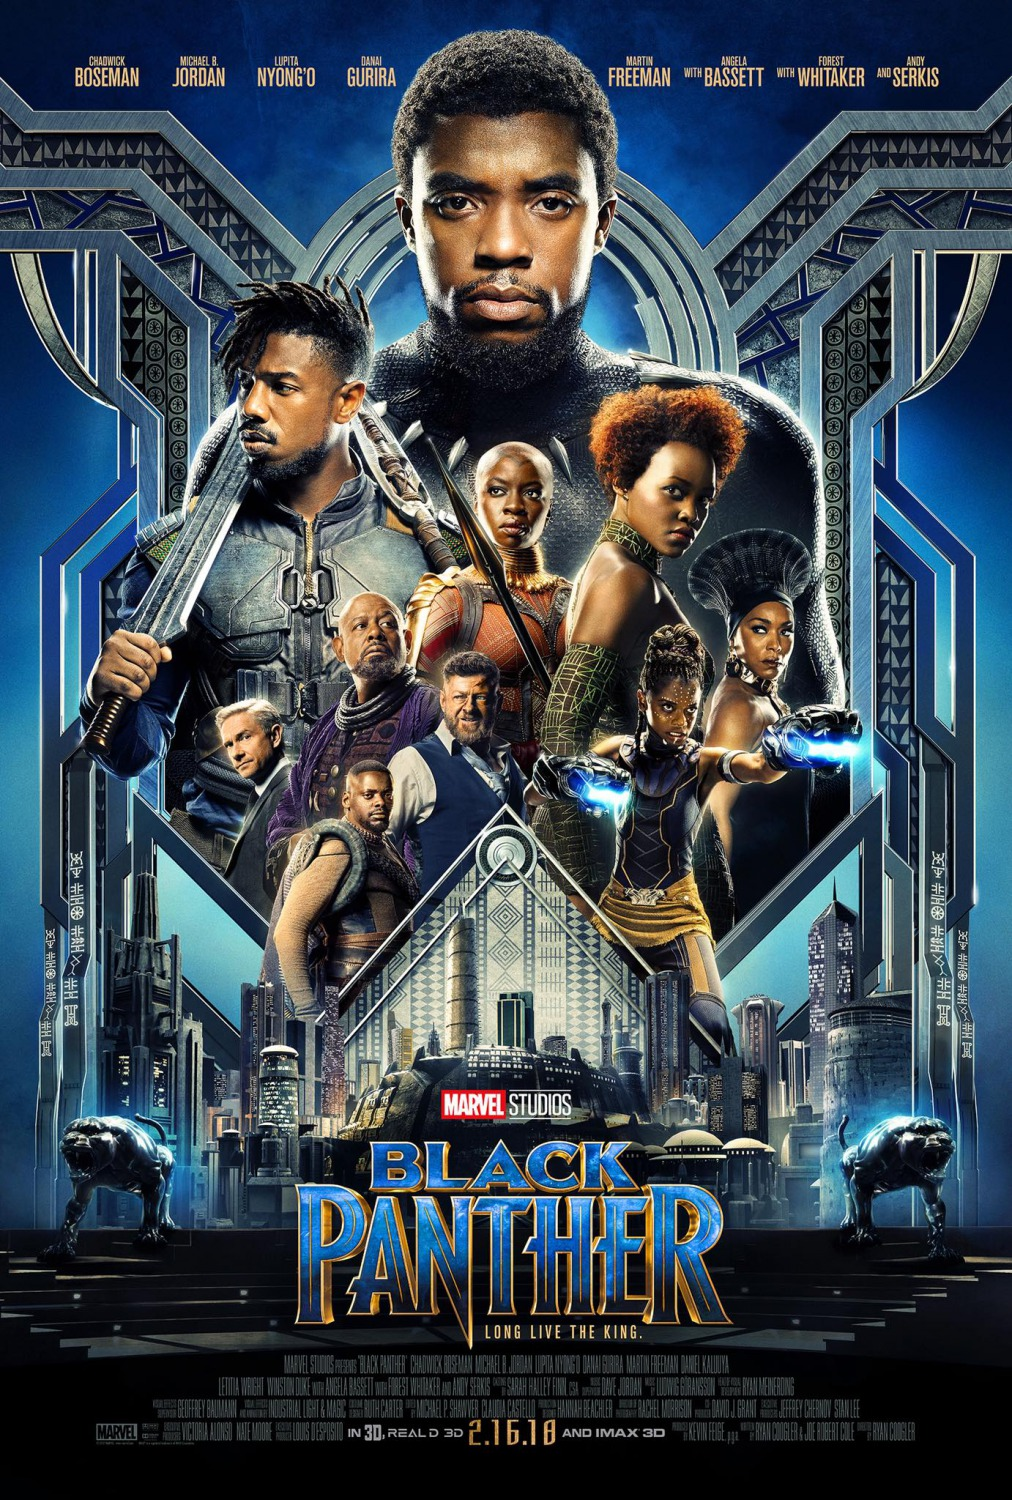 Black Panther poster featuring T'Challa, Killmonger, Nakia, Okoye, Shuri, Ramonda, Klaue, W'Kabi, Zuri, and Ross